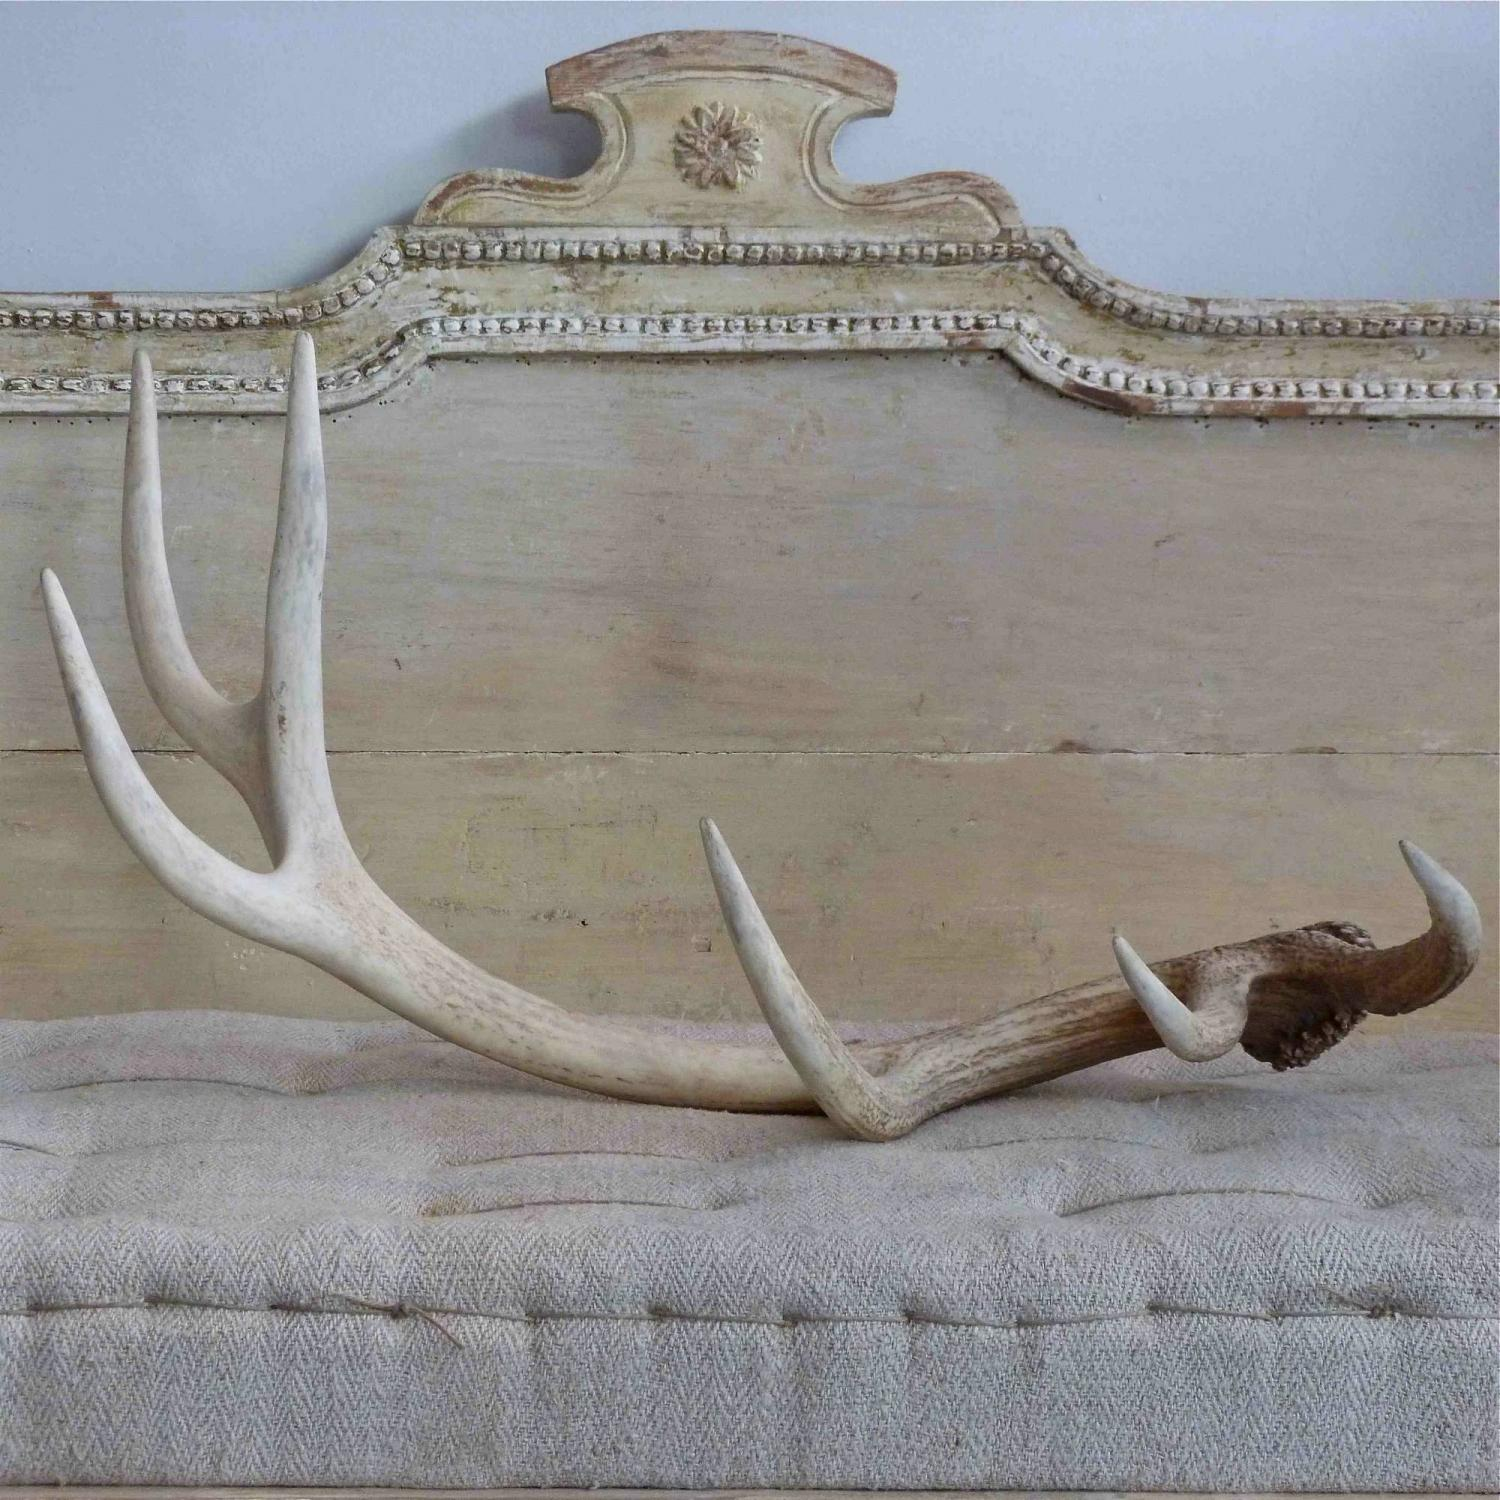 VERY LARGE BLEACHED STAG ANTLERS